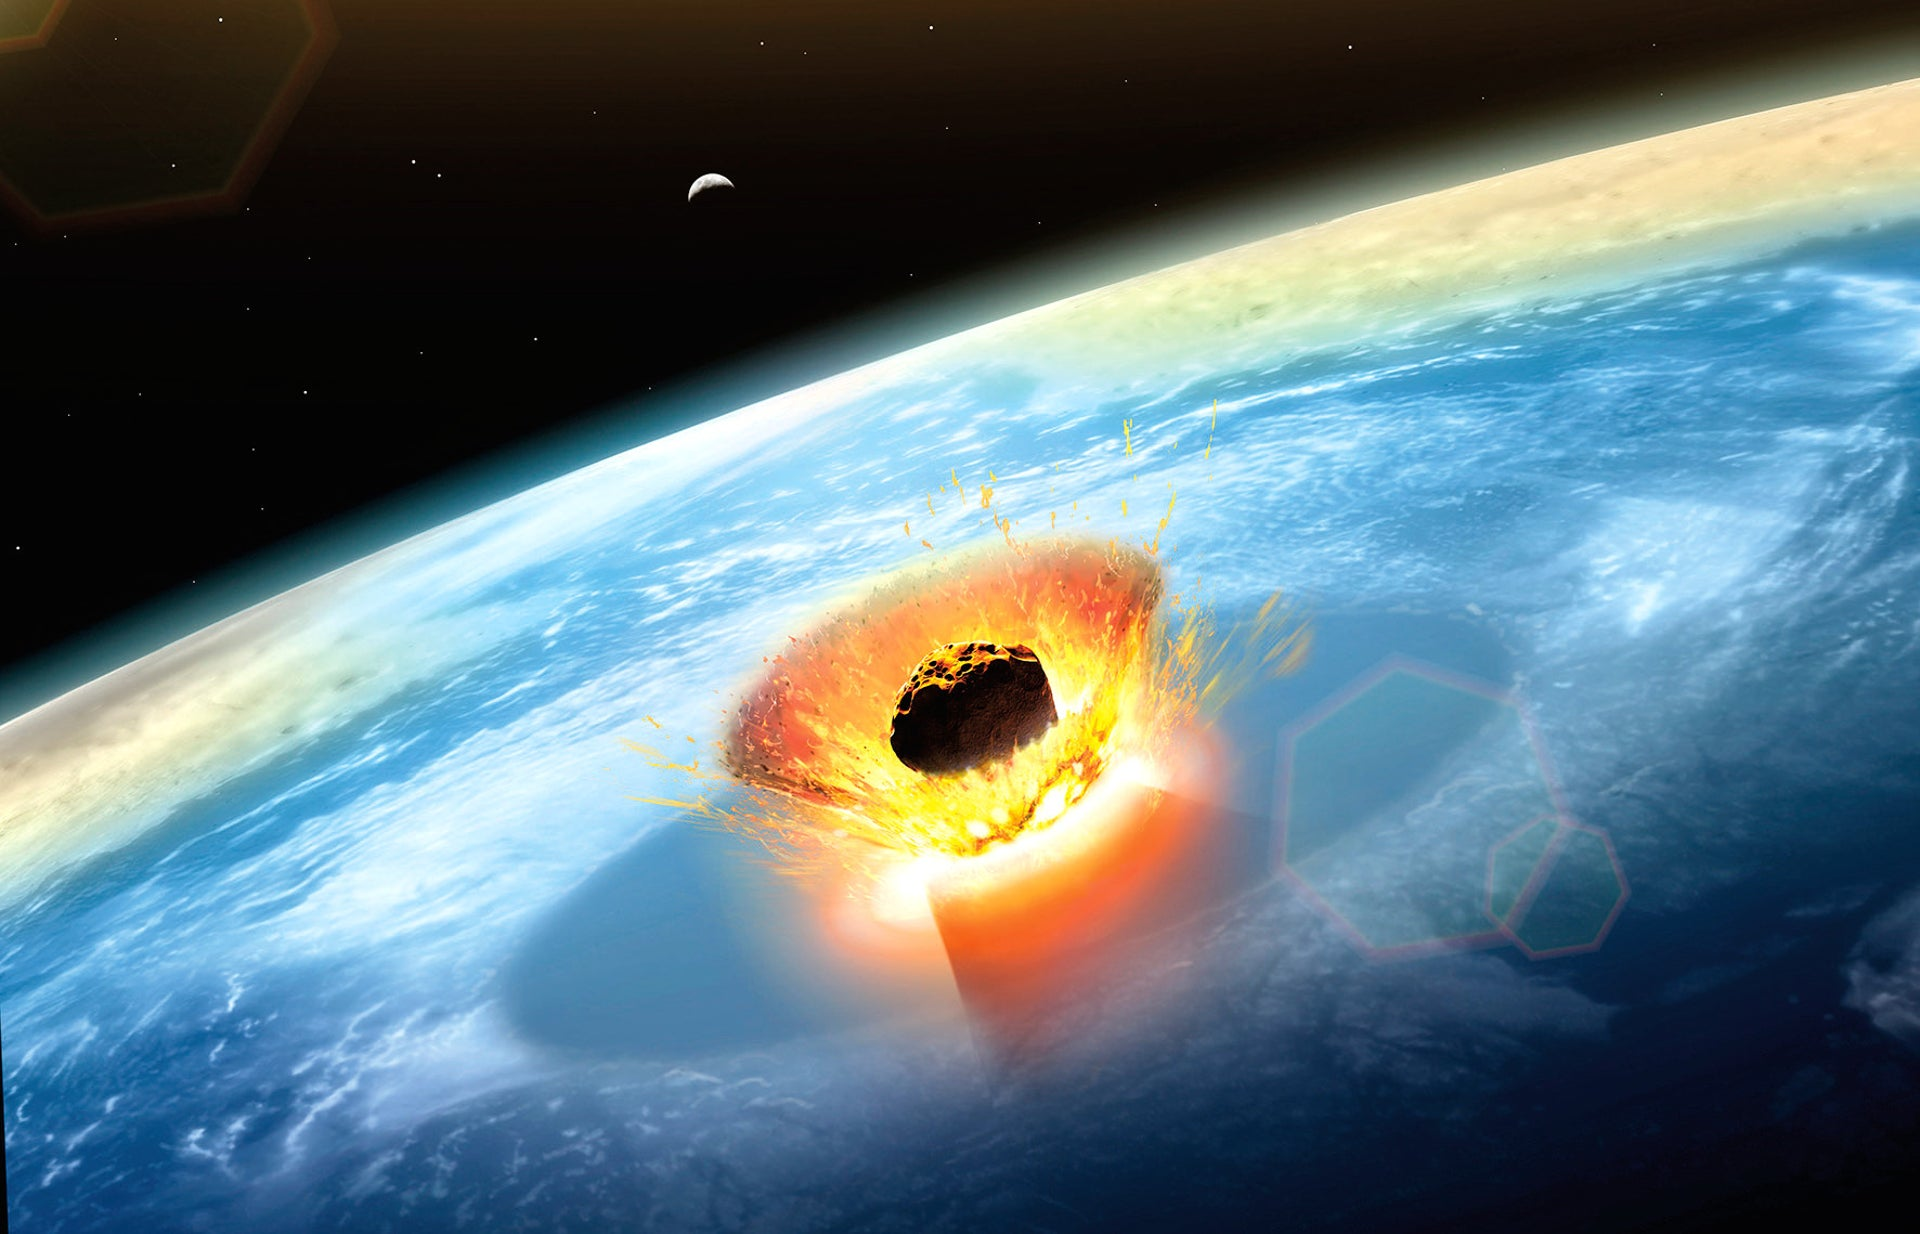 Illustration of a large asteroid colliding with Earth on the Yucatan Peninsula, in Mexico.